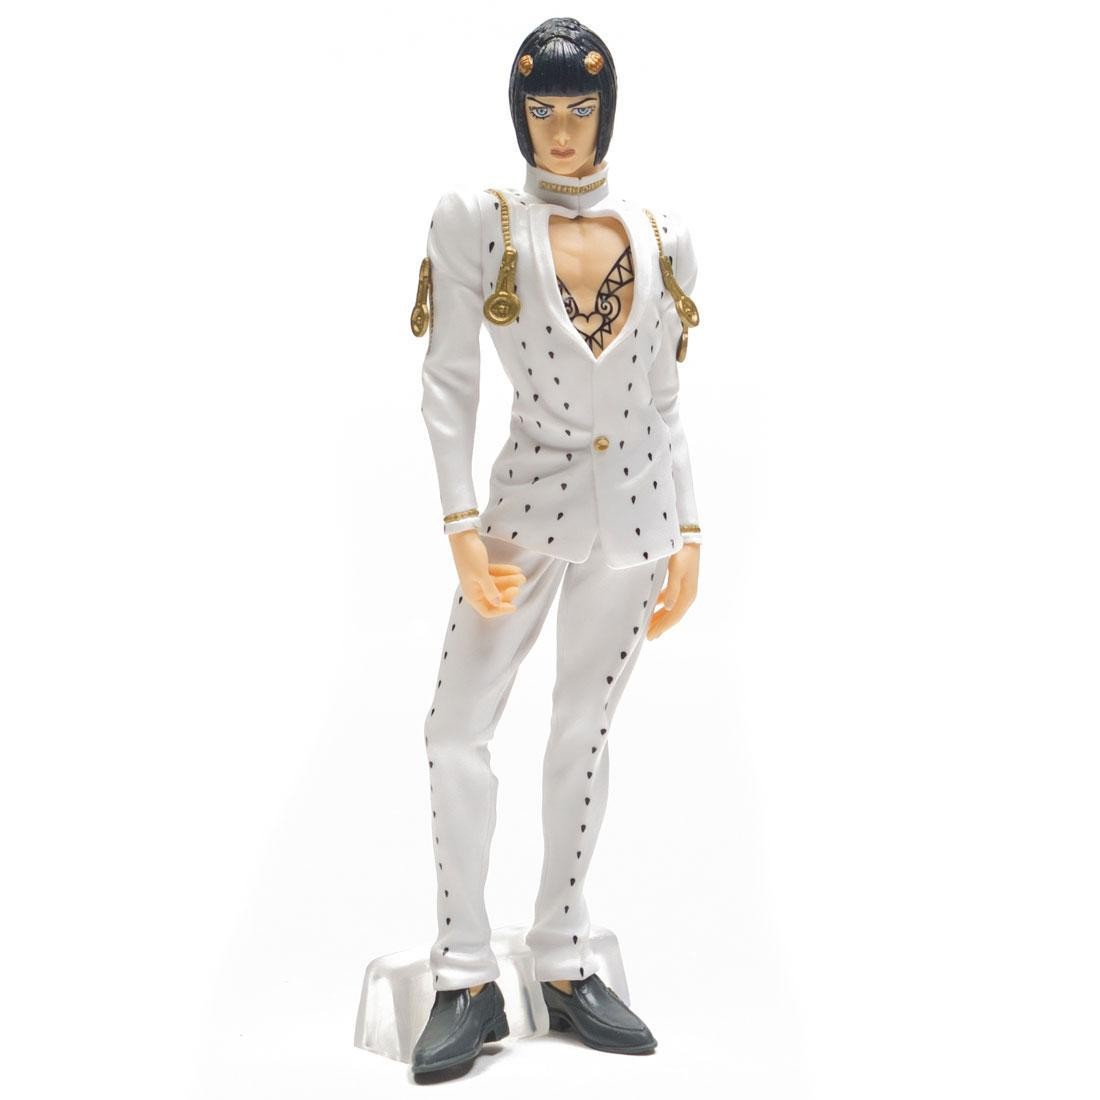 Banpresto JoJo's Bizarre Adventure Golden Wind JoJo's Figure Gallery 2 - Bruno Bucciarati (white)